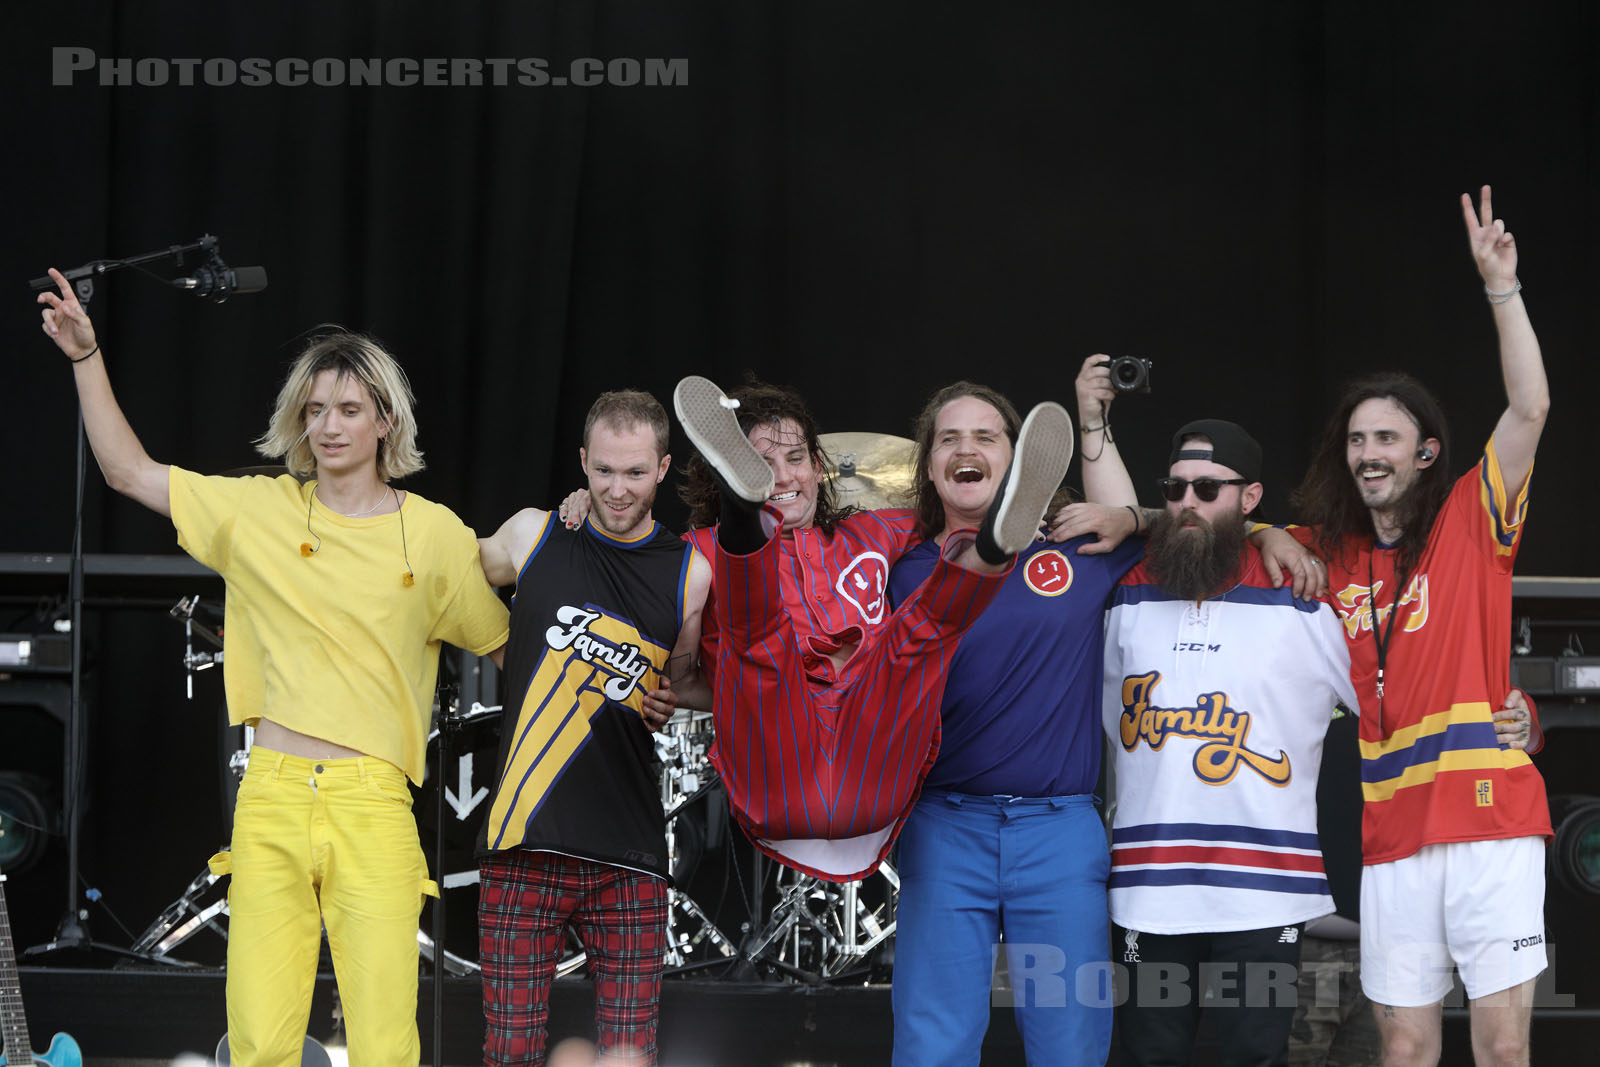 JUDAH AND THE LION - 2019-07-21 - PARIS - Hippodrome de Longchamp - Main Stage 1